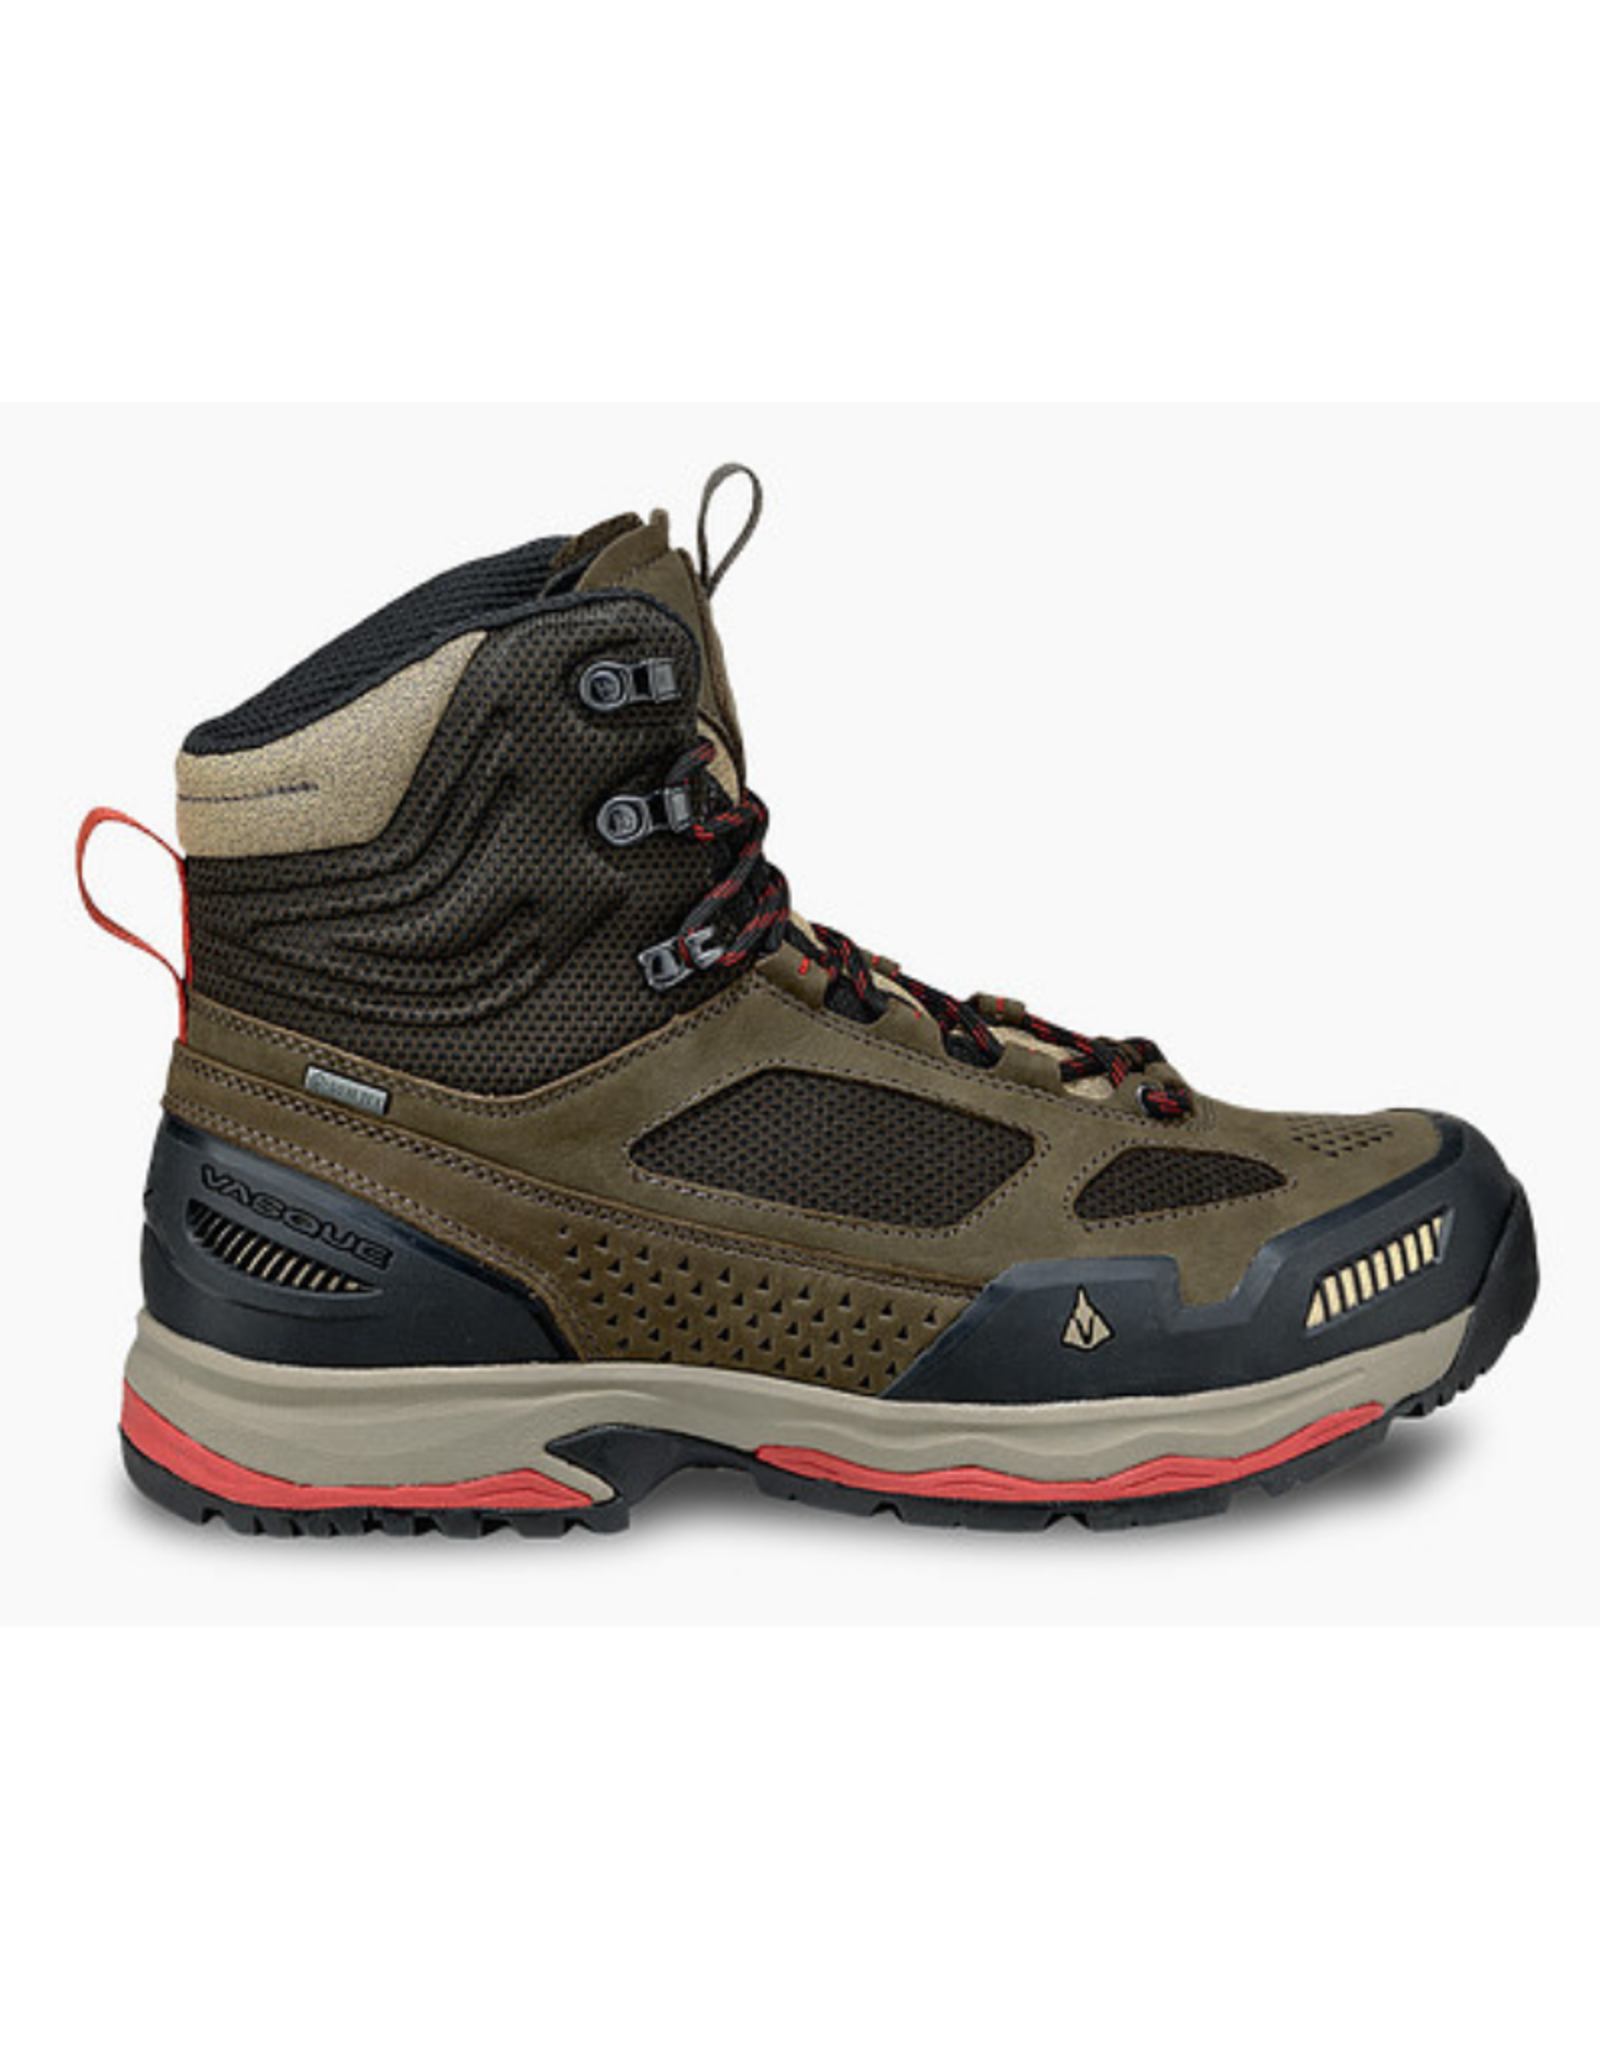 Vasque M's 7040 Breeze AT GTX Boot